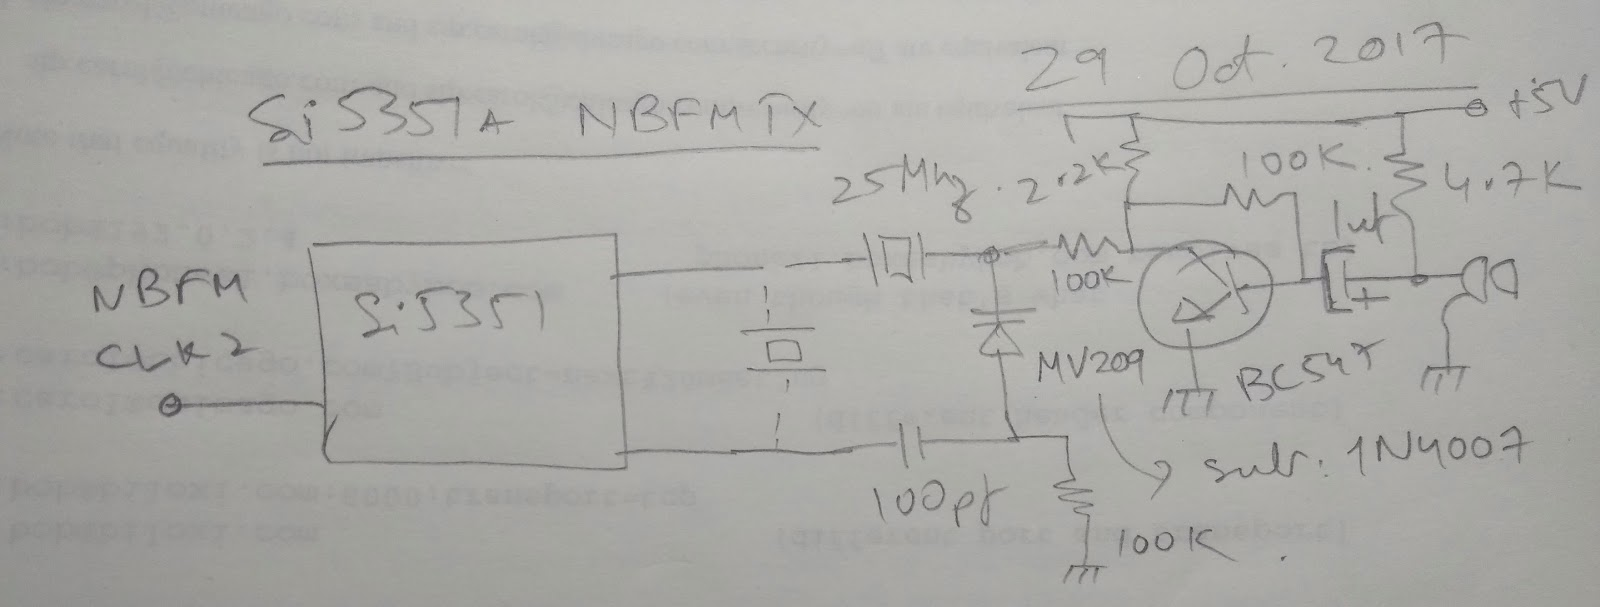 Bitx Hacks 2017 Far Circuits Bitx20 Circuit Board Fabrication Series With The Reference Crystal Oscillator And Drive It Audio I Used A Very Simple Amplifier To Boost Up Here Is